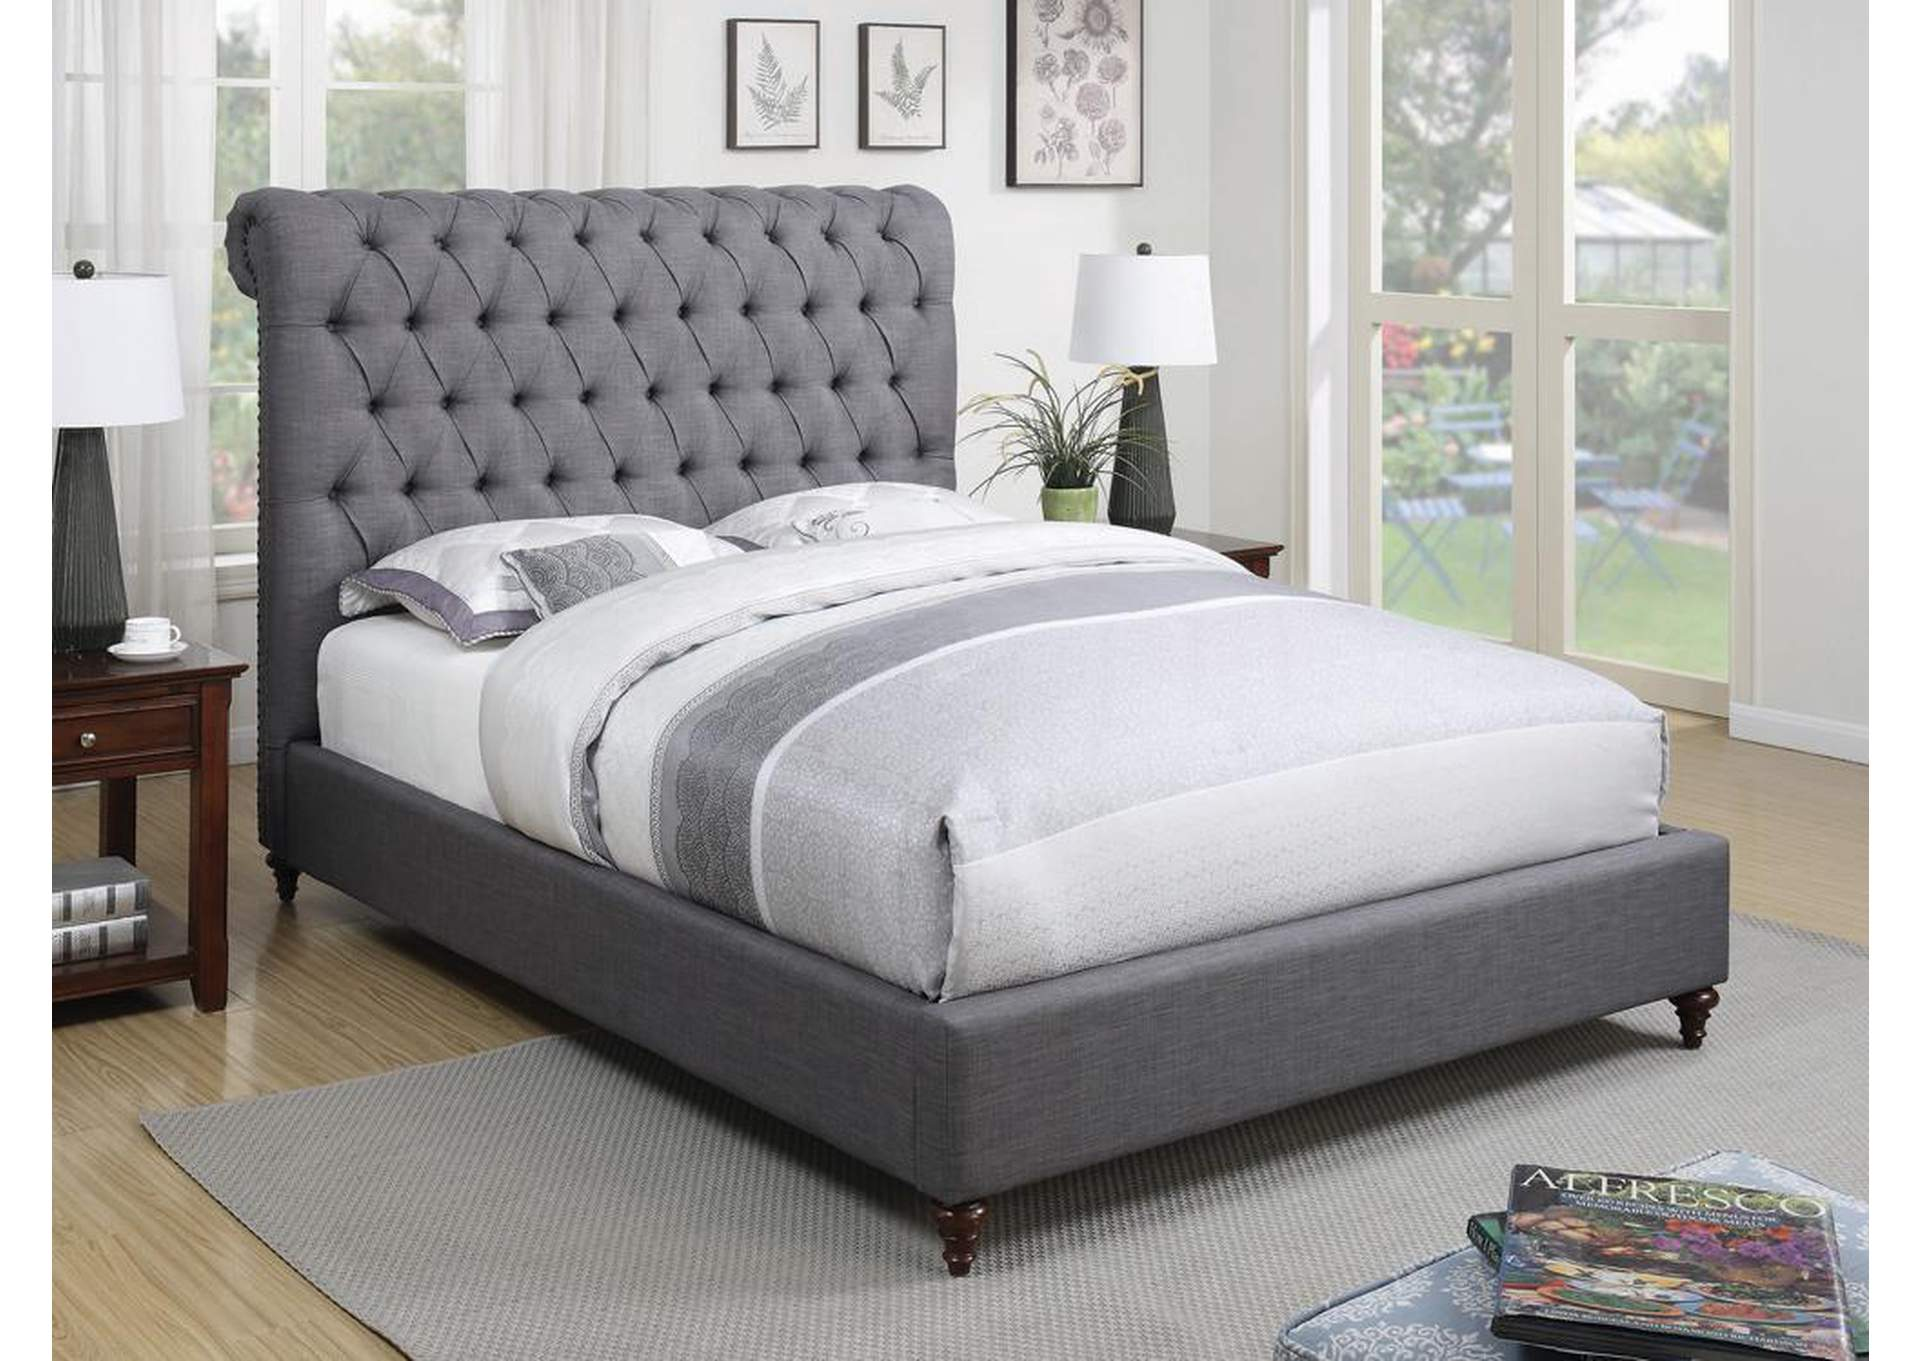 Devon Gray Upholstered Sleigh Full Bed,Coaster Furniture